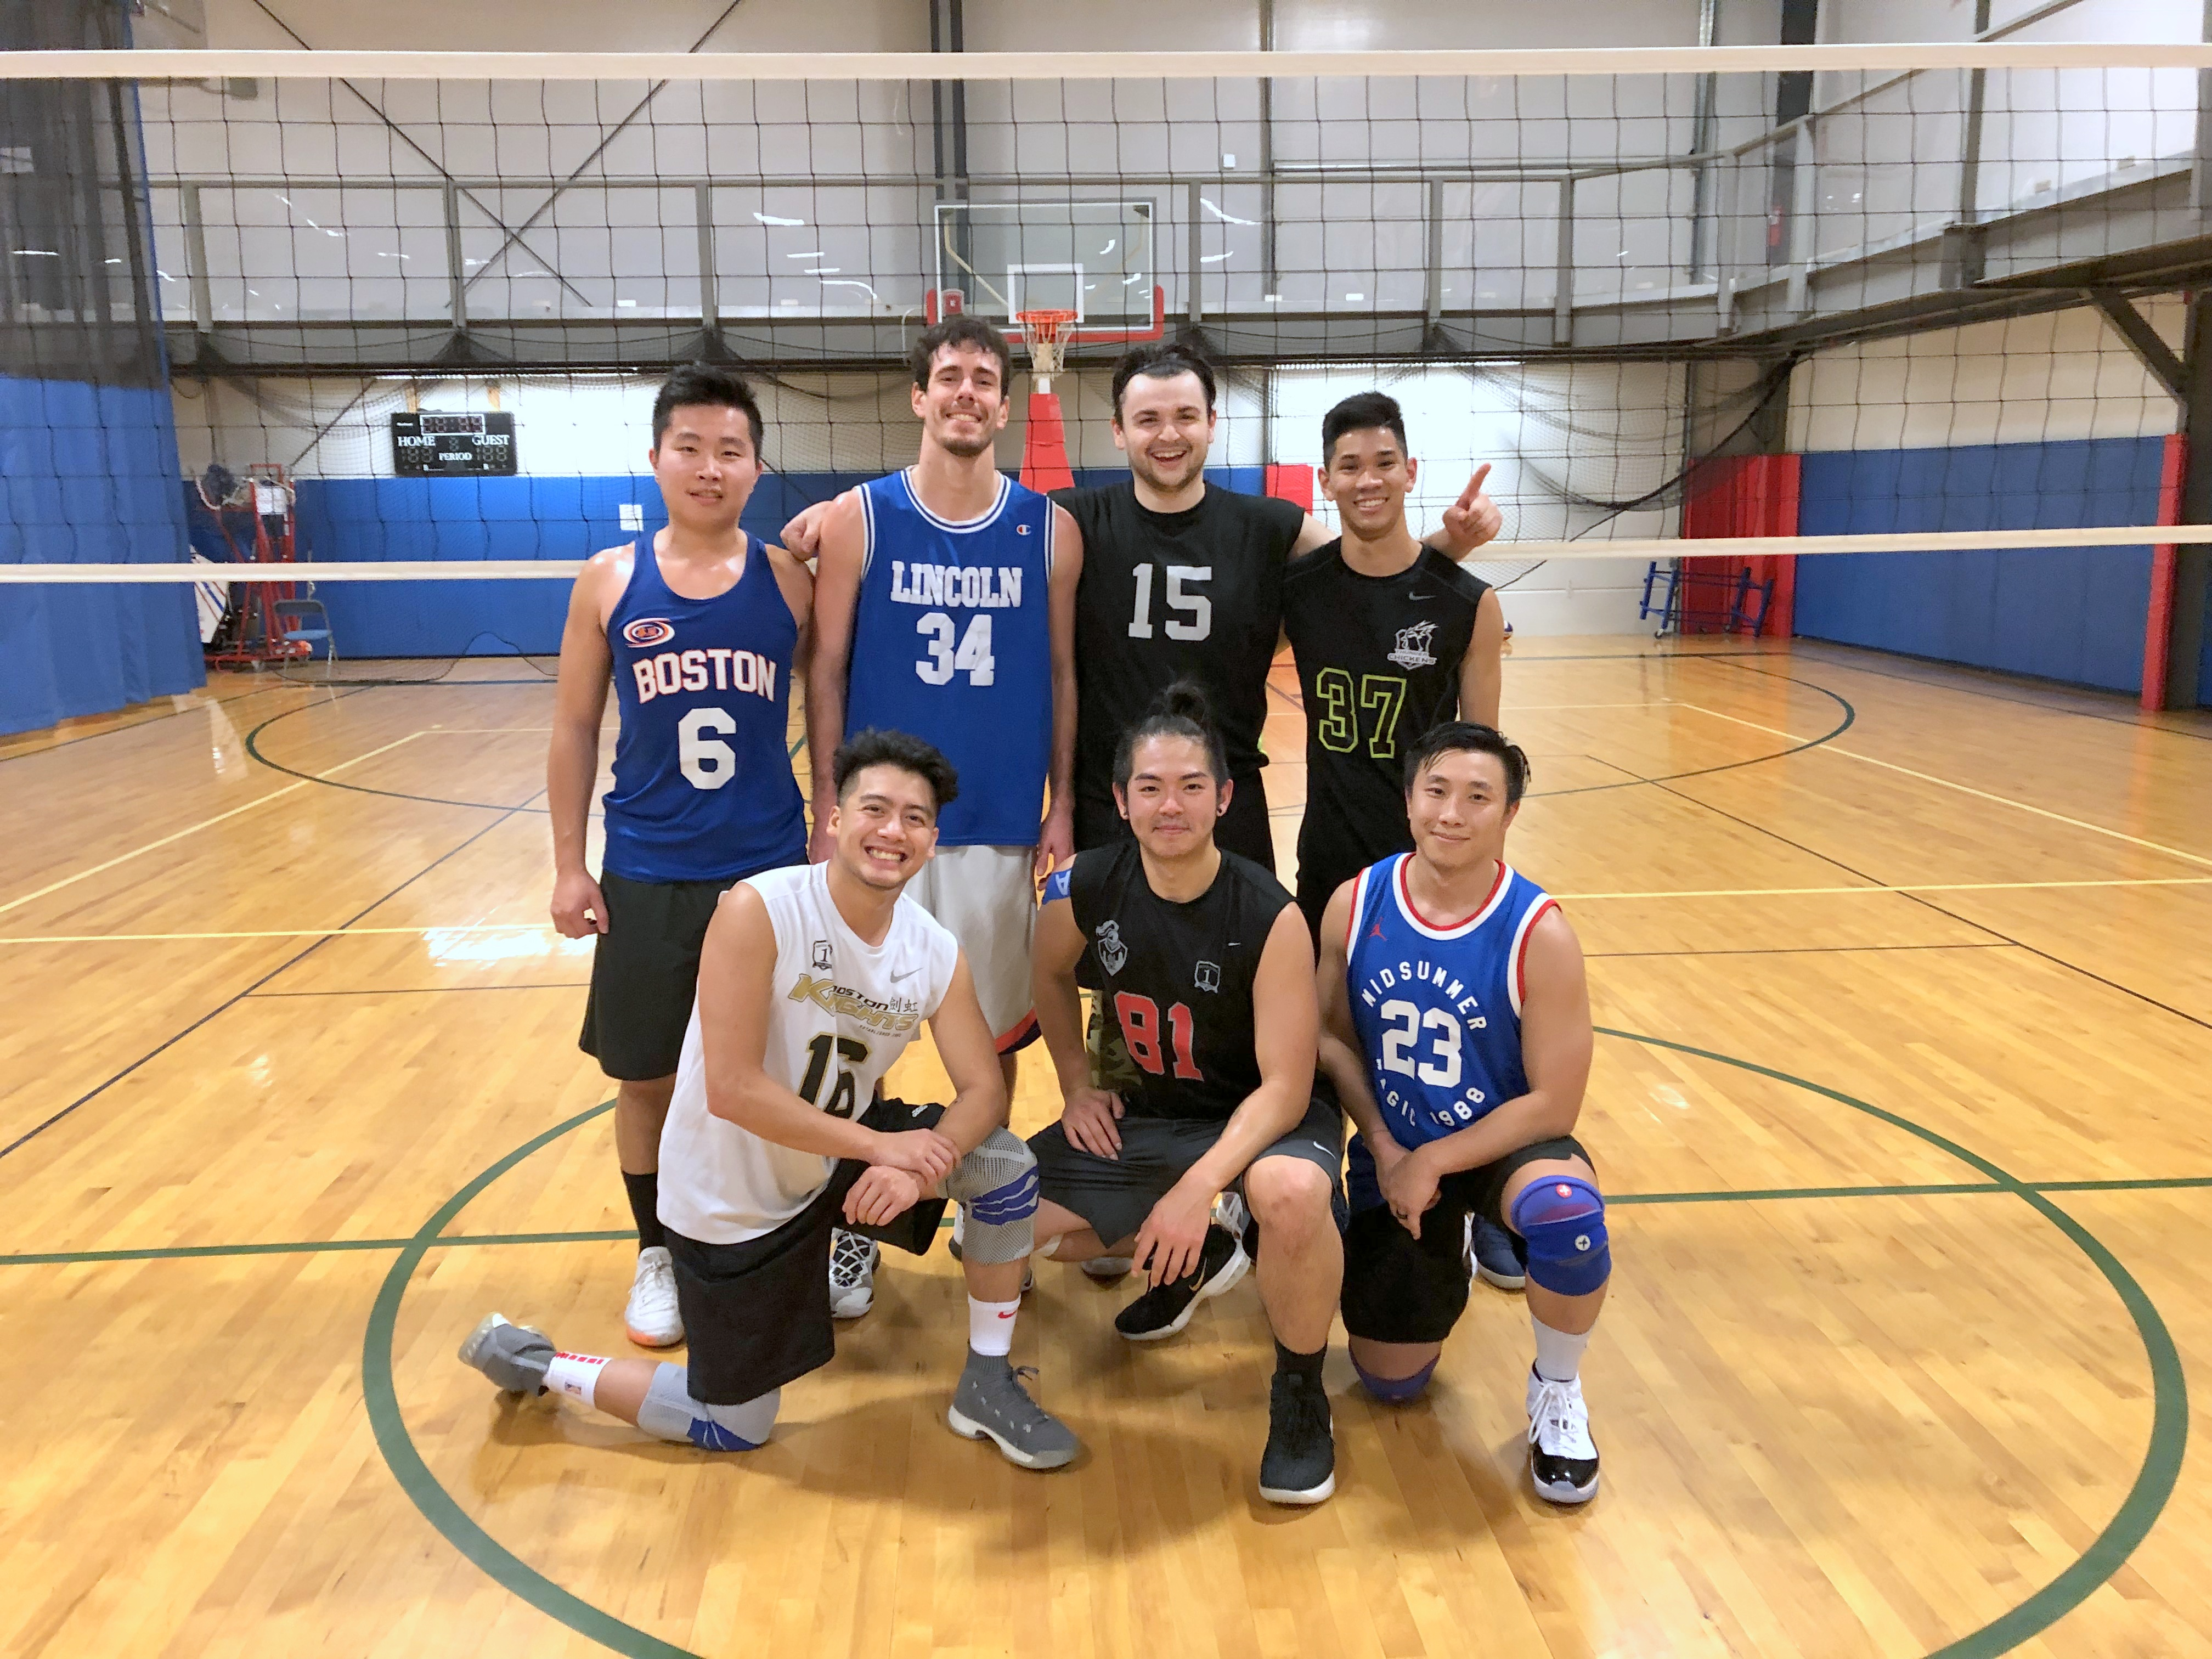 12/16/18 Scruffy little caffeinated B- thing defeats Rampage to win MB- at NSA